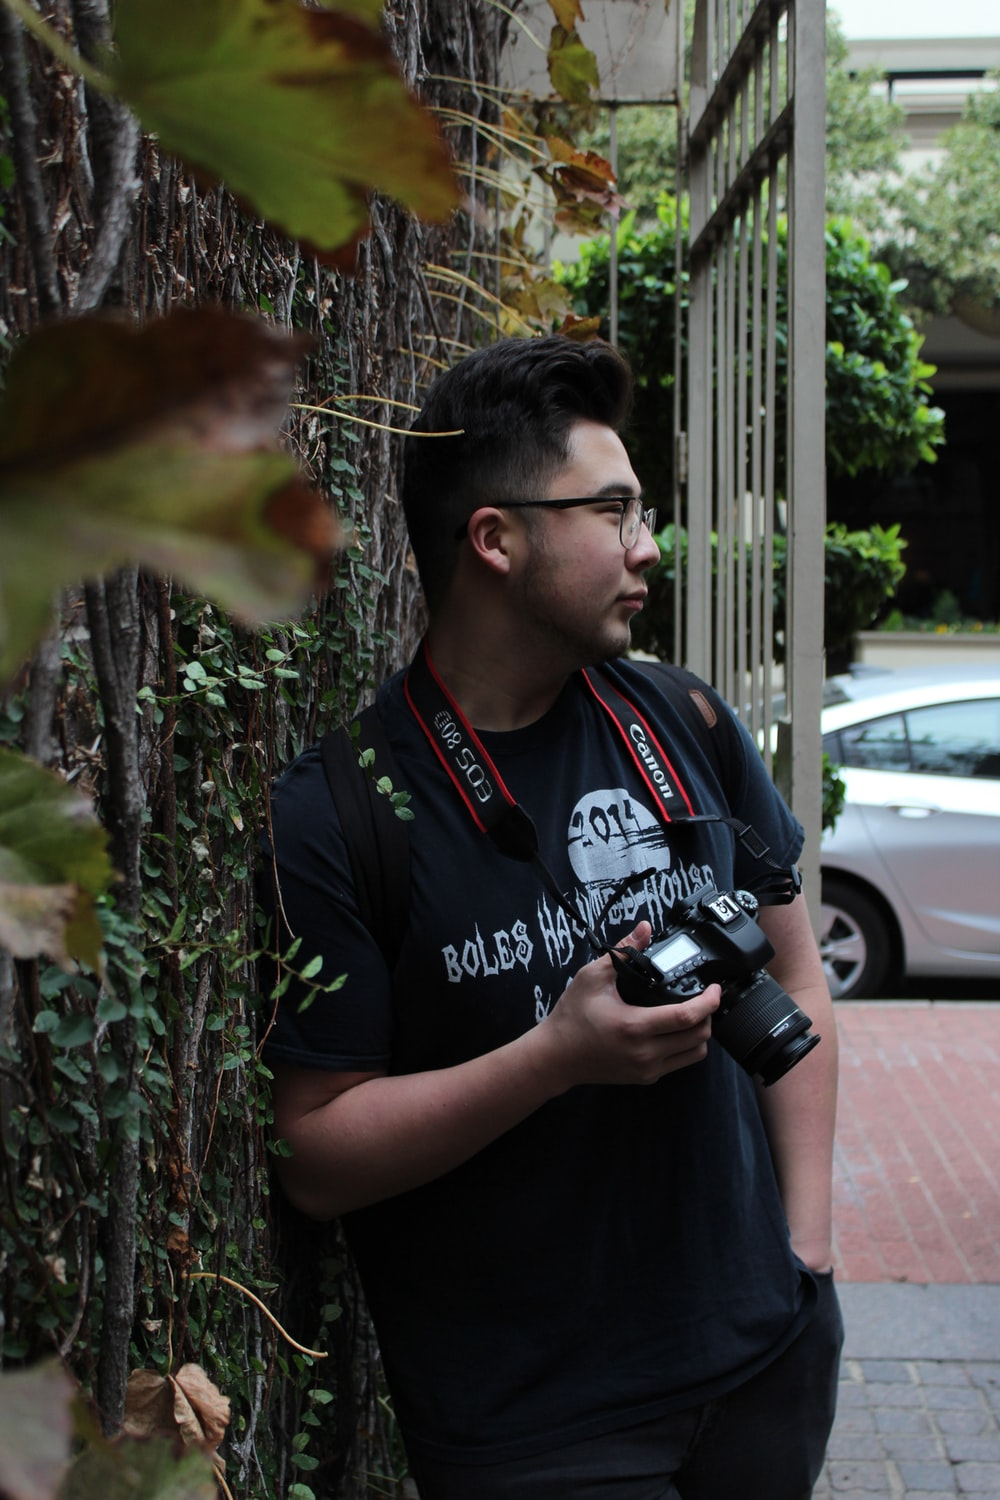 man standing while holding DSLR camera